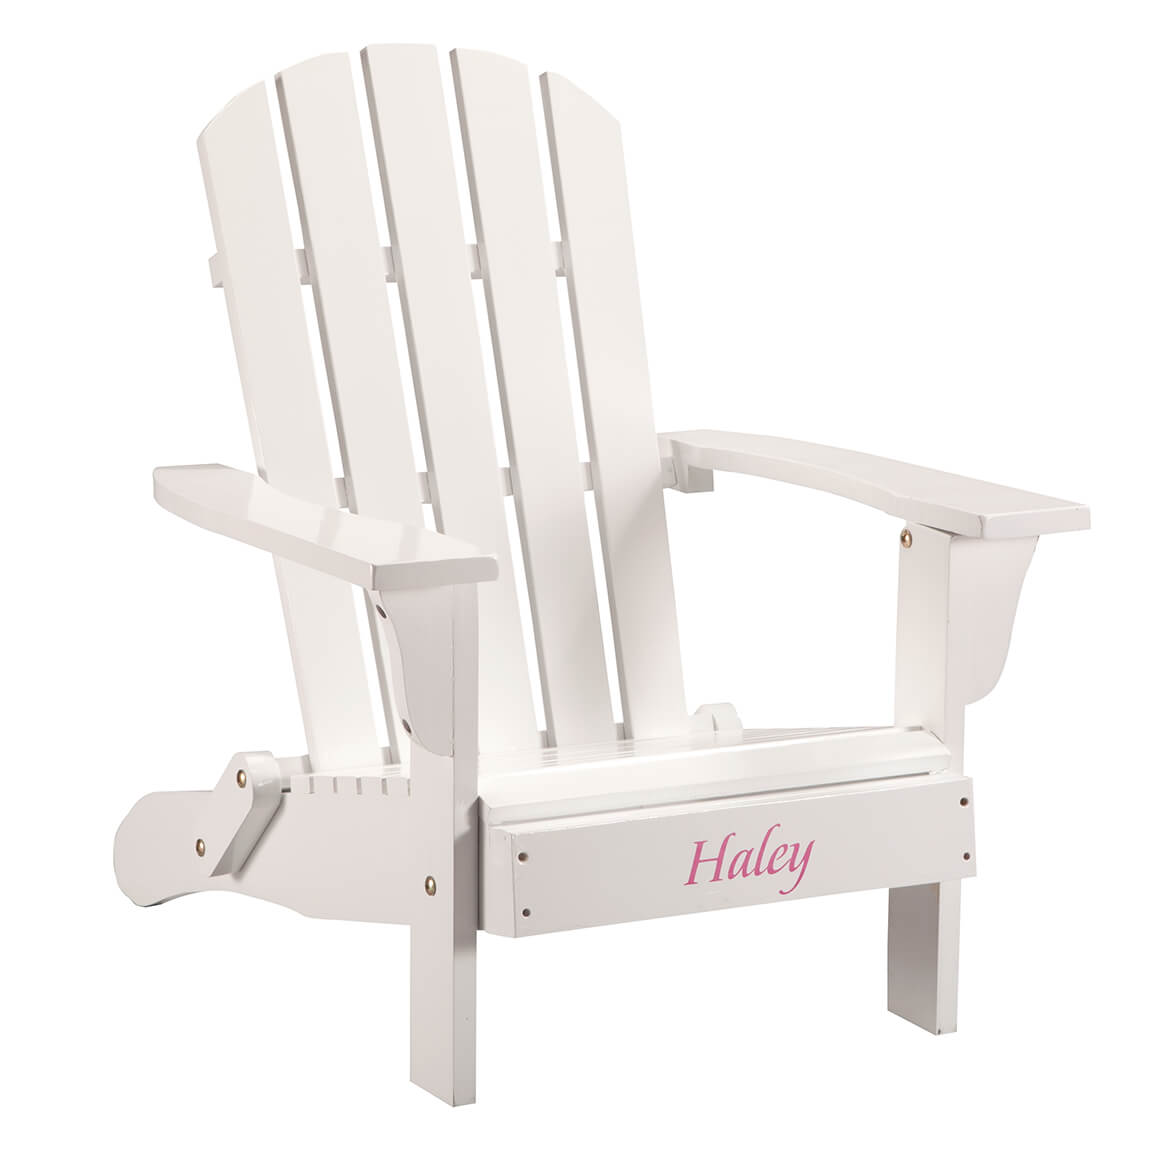 Personalized Children's Adirondack Chair